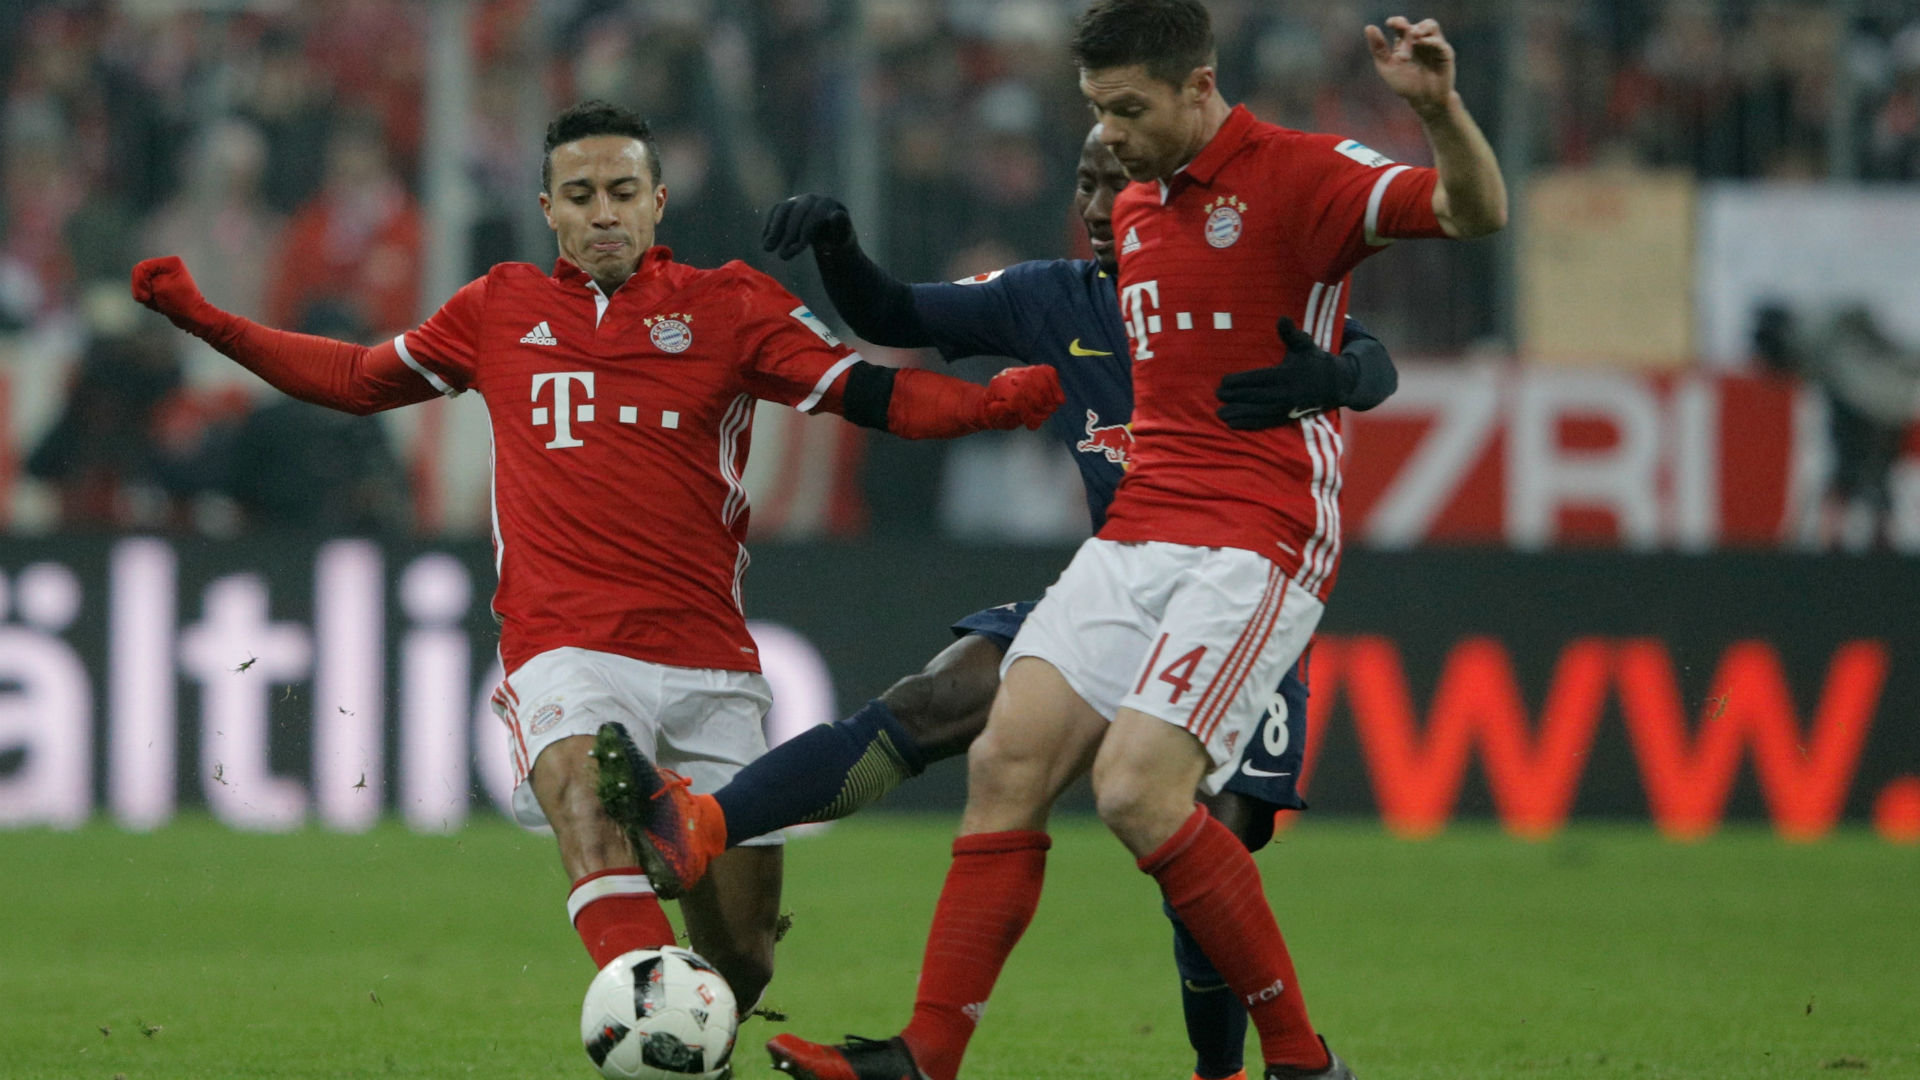 Lewandowski strikes twice as Bayern seals German double